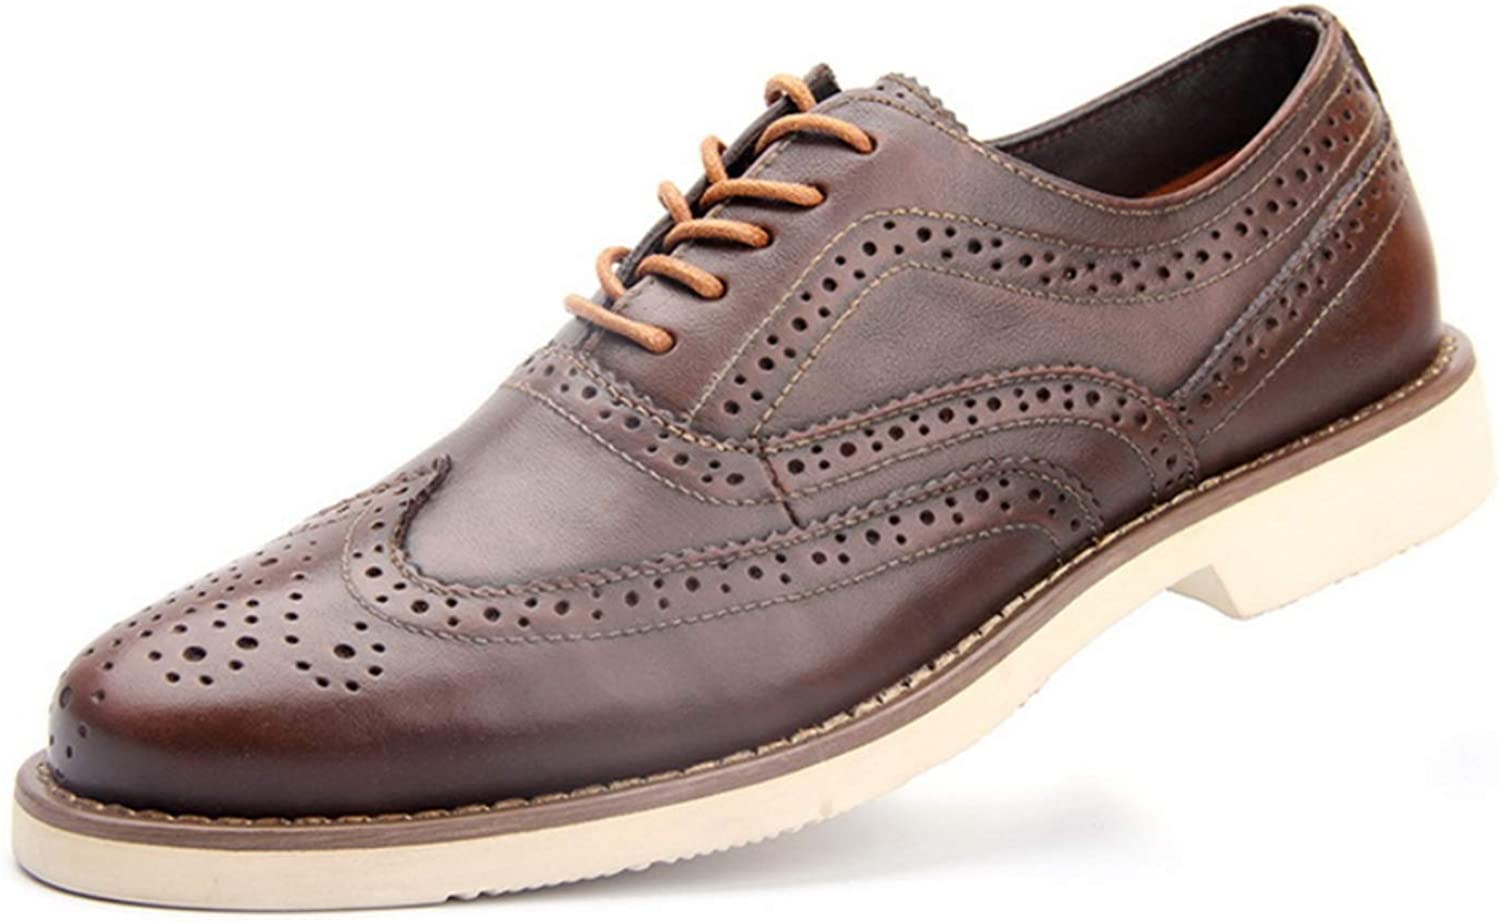 Shiney Men's Genuine Leather Business Casual shoes Brock Carved Hollow Retro Breathable Low-Cut Tooling shoes